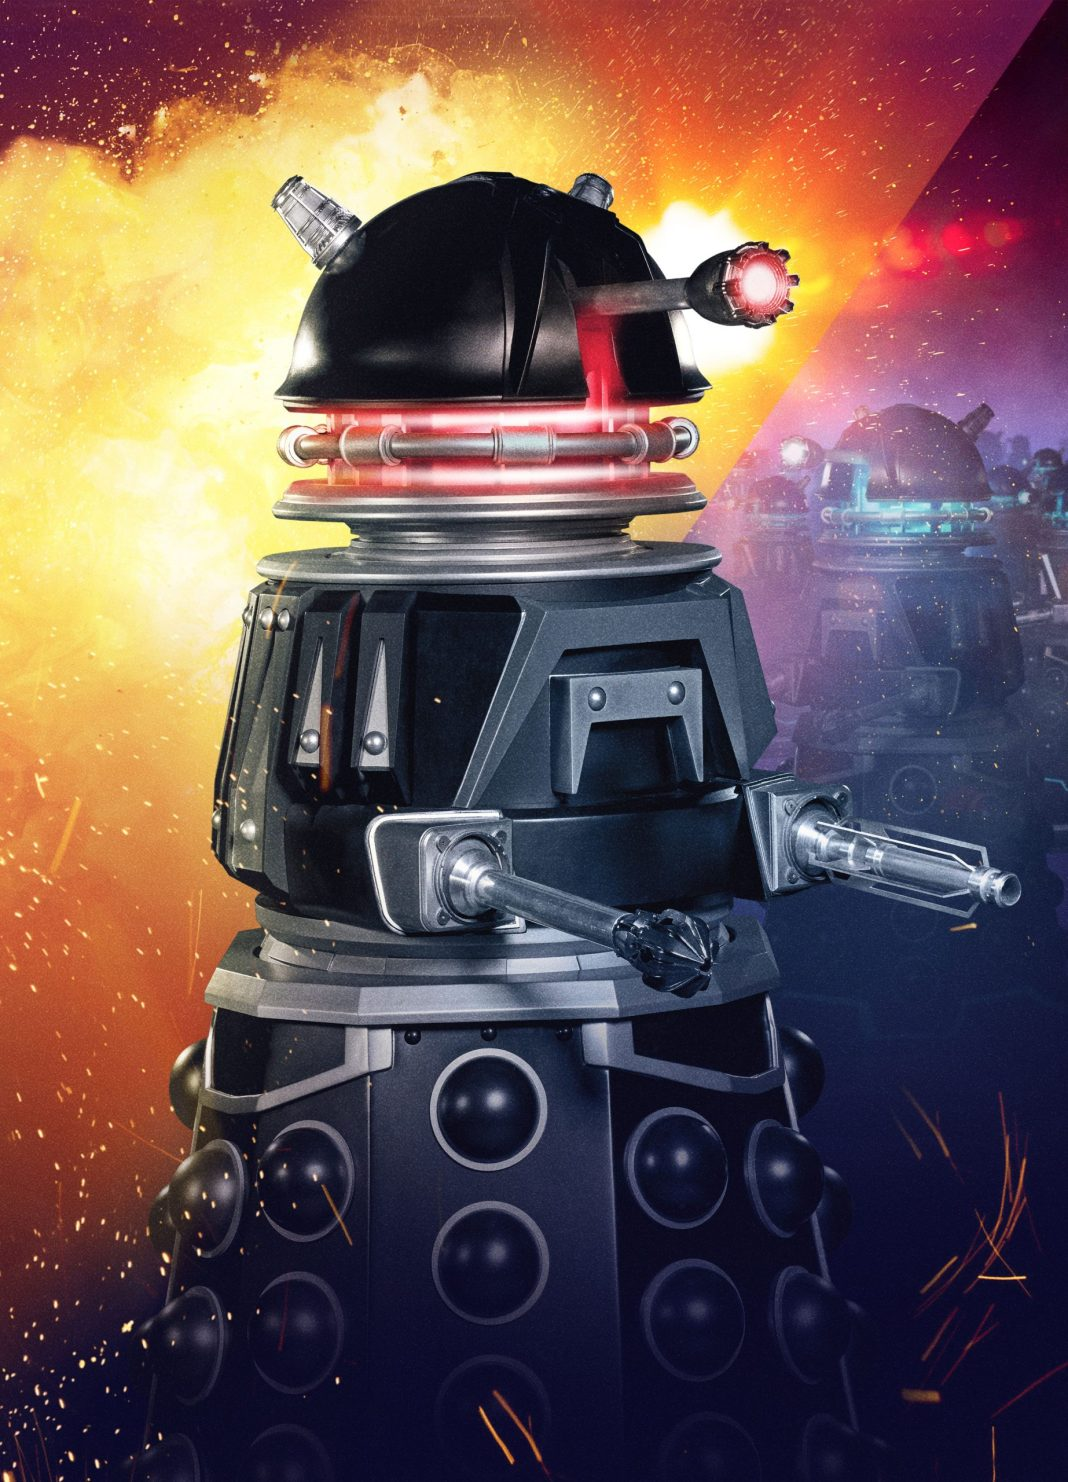 One of the Dalek defence drones in Revolution of the Daleks (C) BBC Studios - Photographer: Ben Blackall Doctor Who